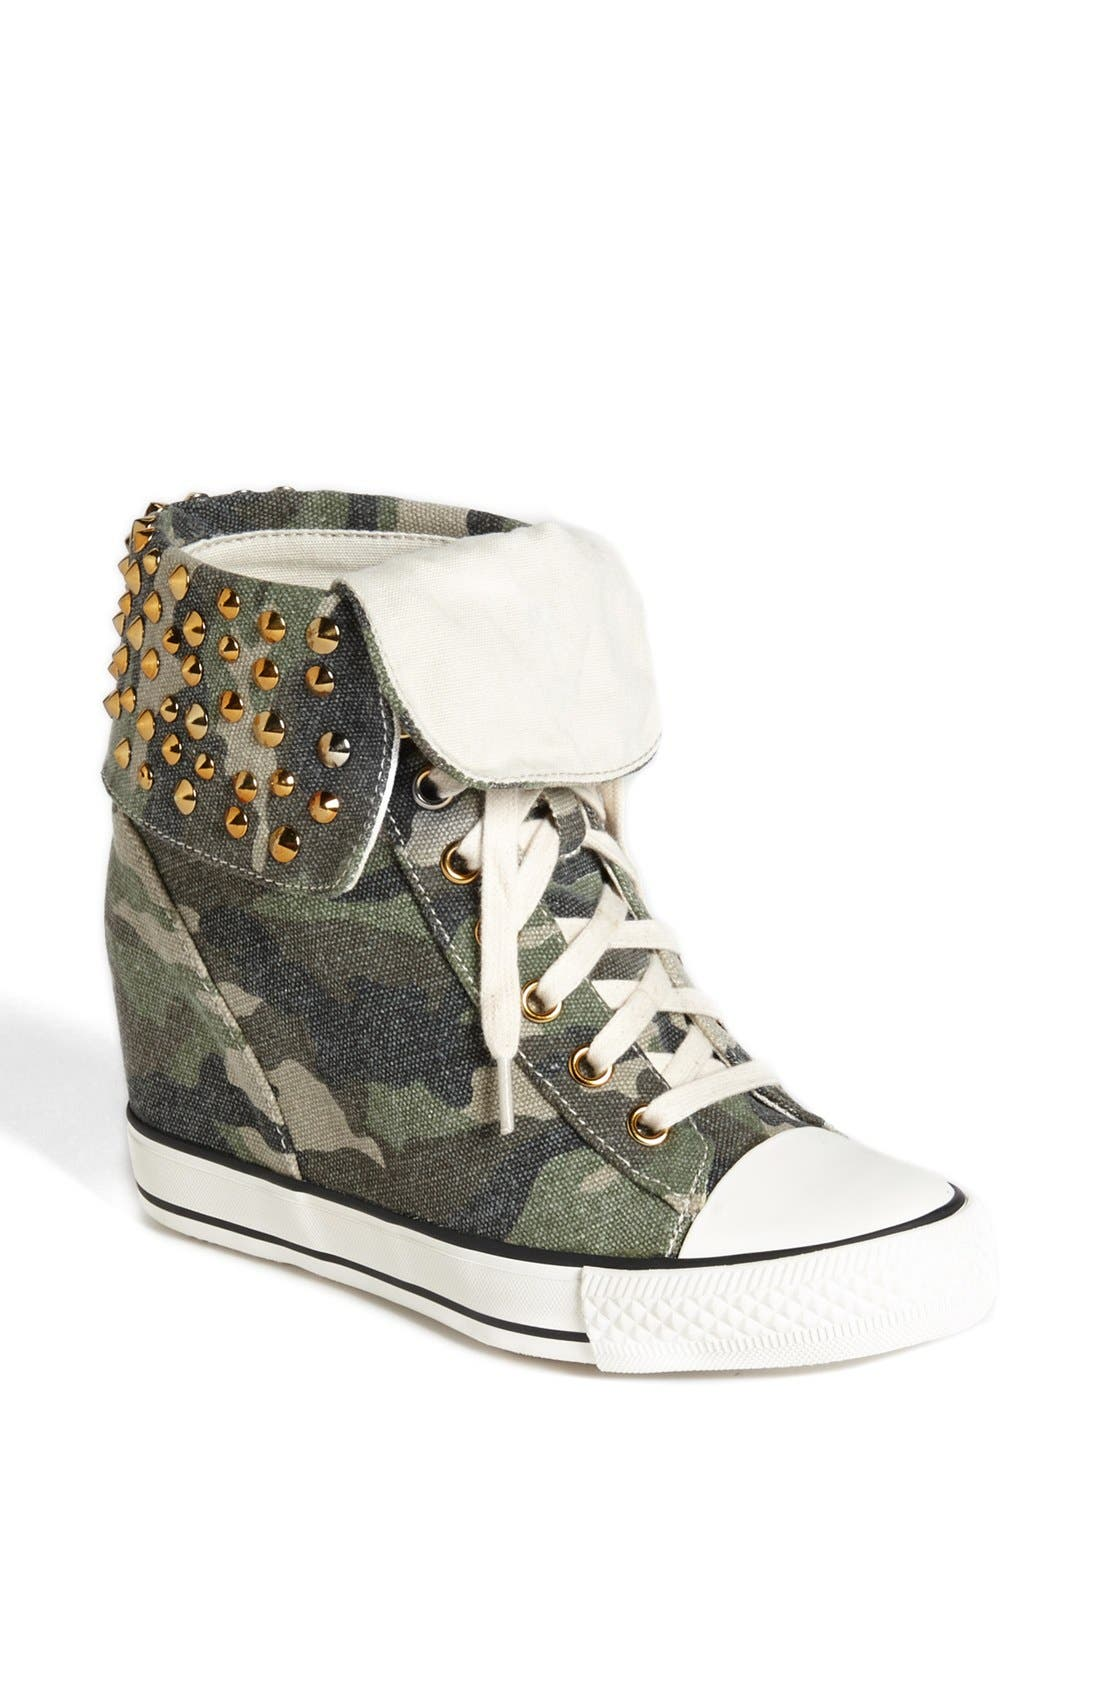 Main Image - GOLDLUXE by Zigi 'Cavity' Wedge Sneaker